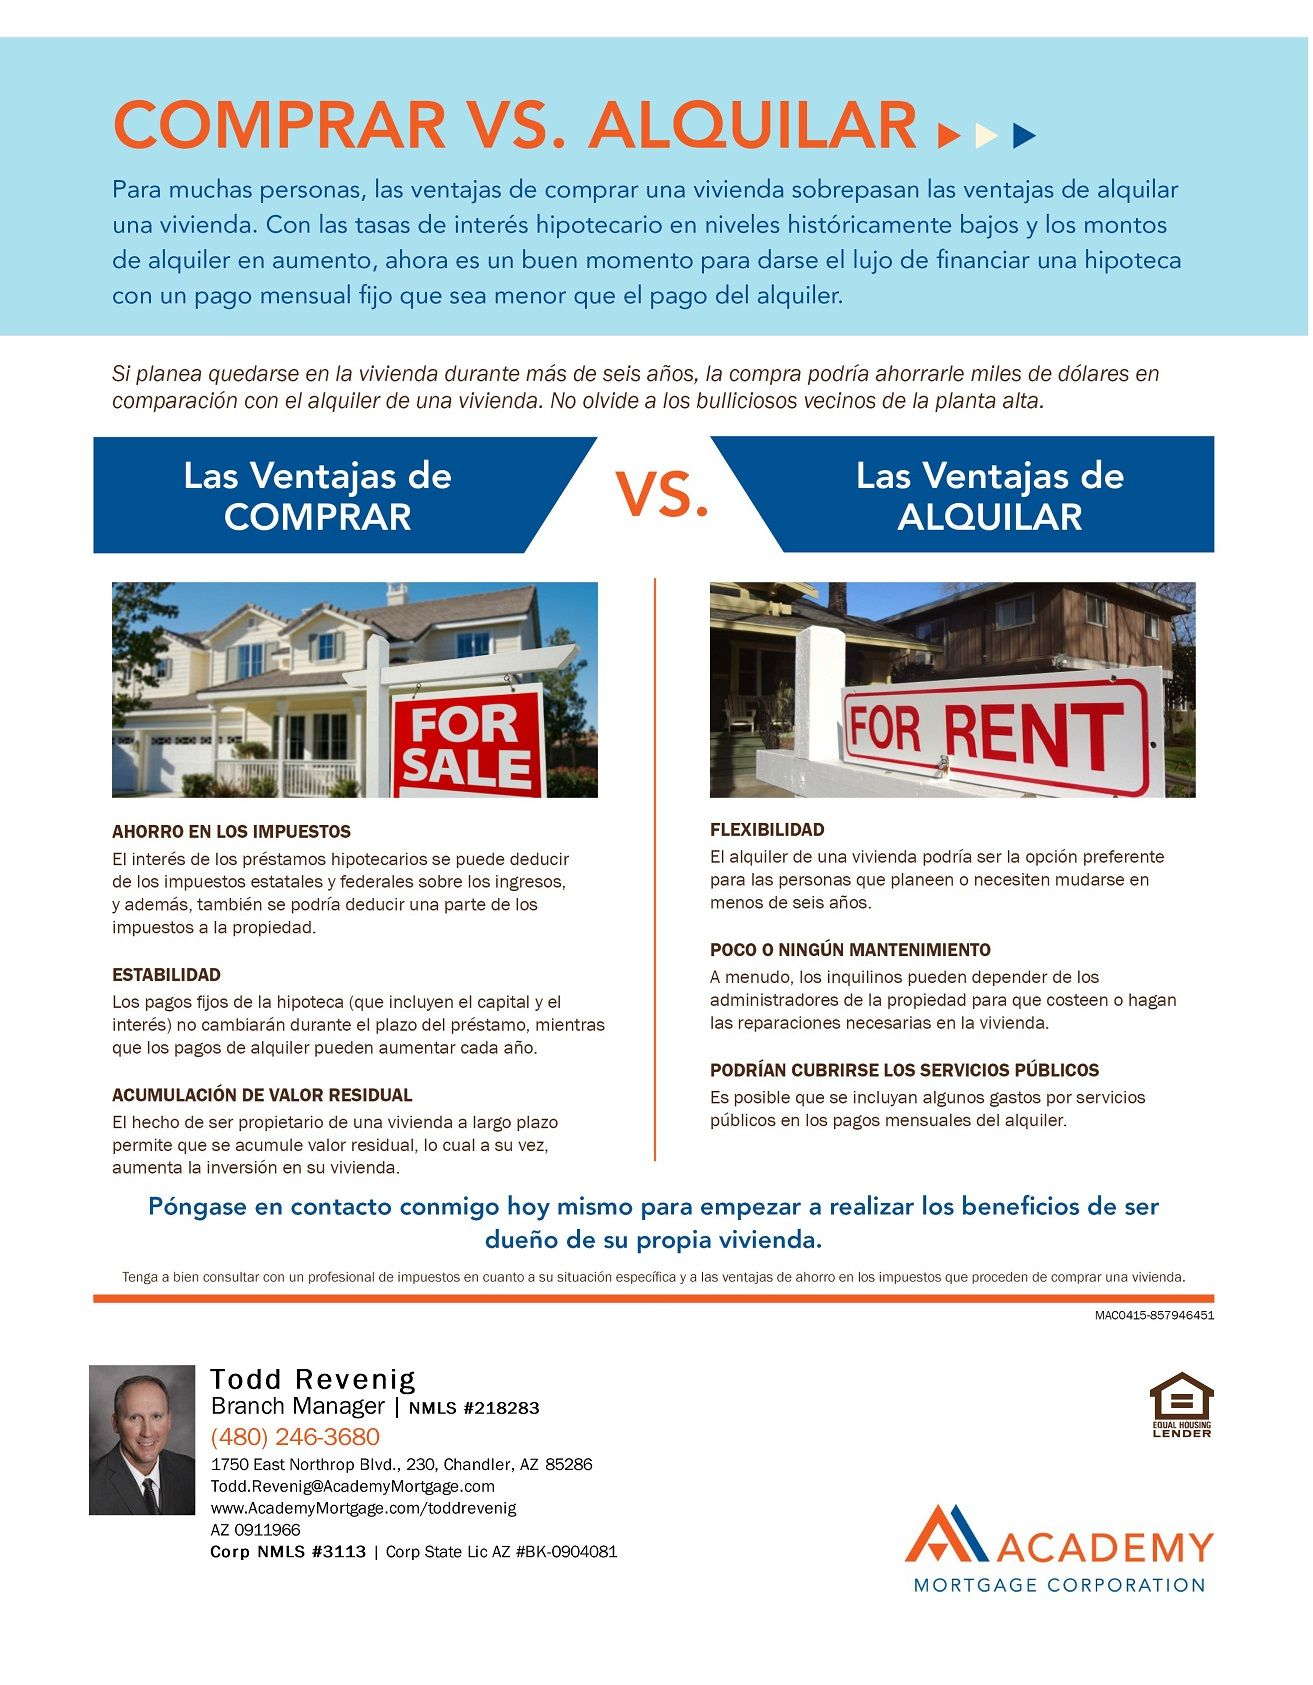 Buying Vs Renting Spanish Mortgage Rates Home Equity Loan Mortgage Loan Officer